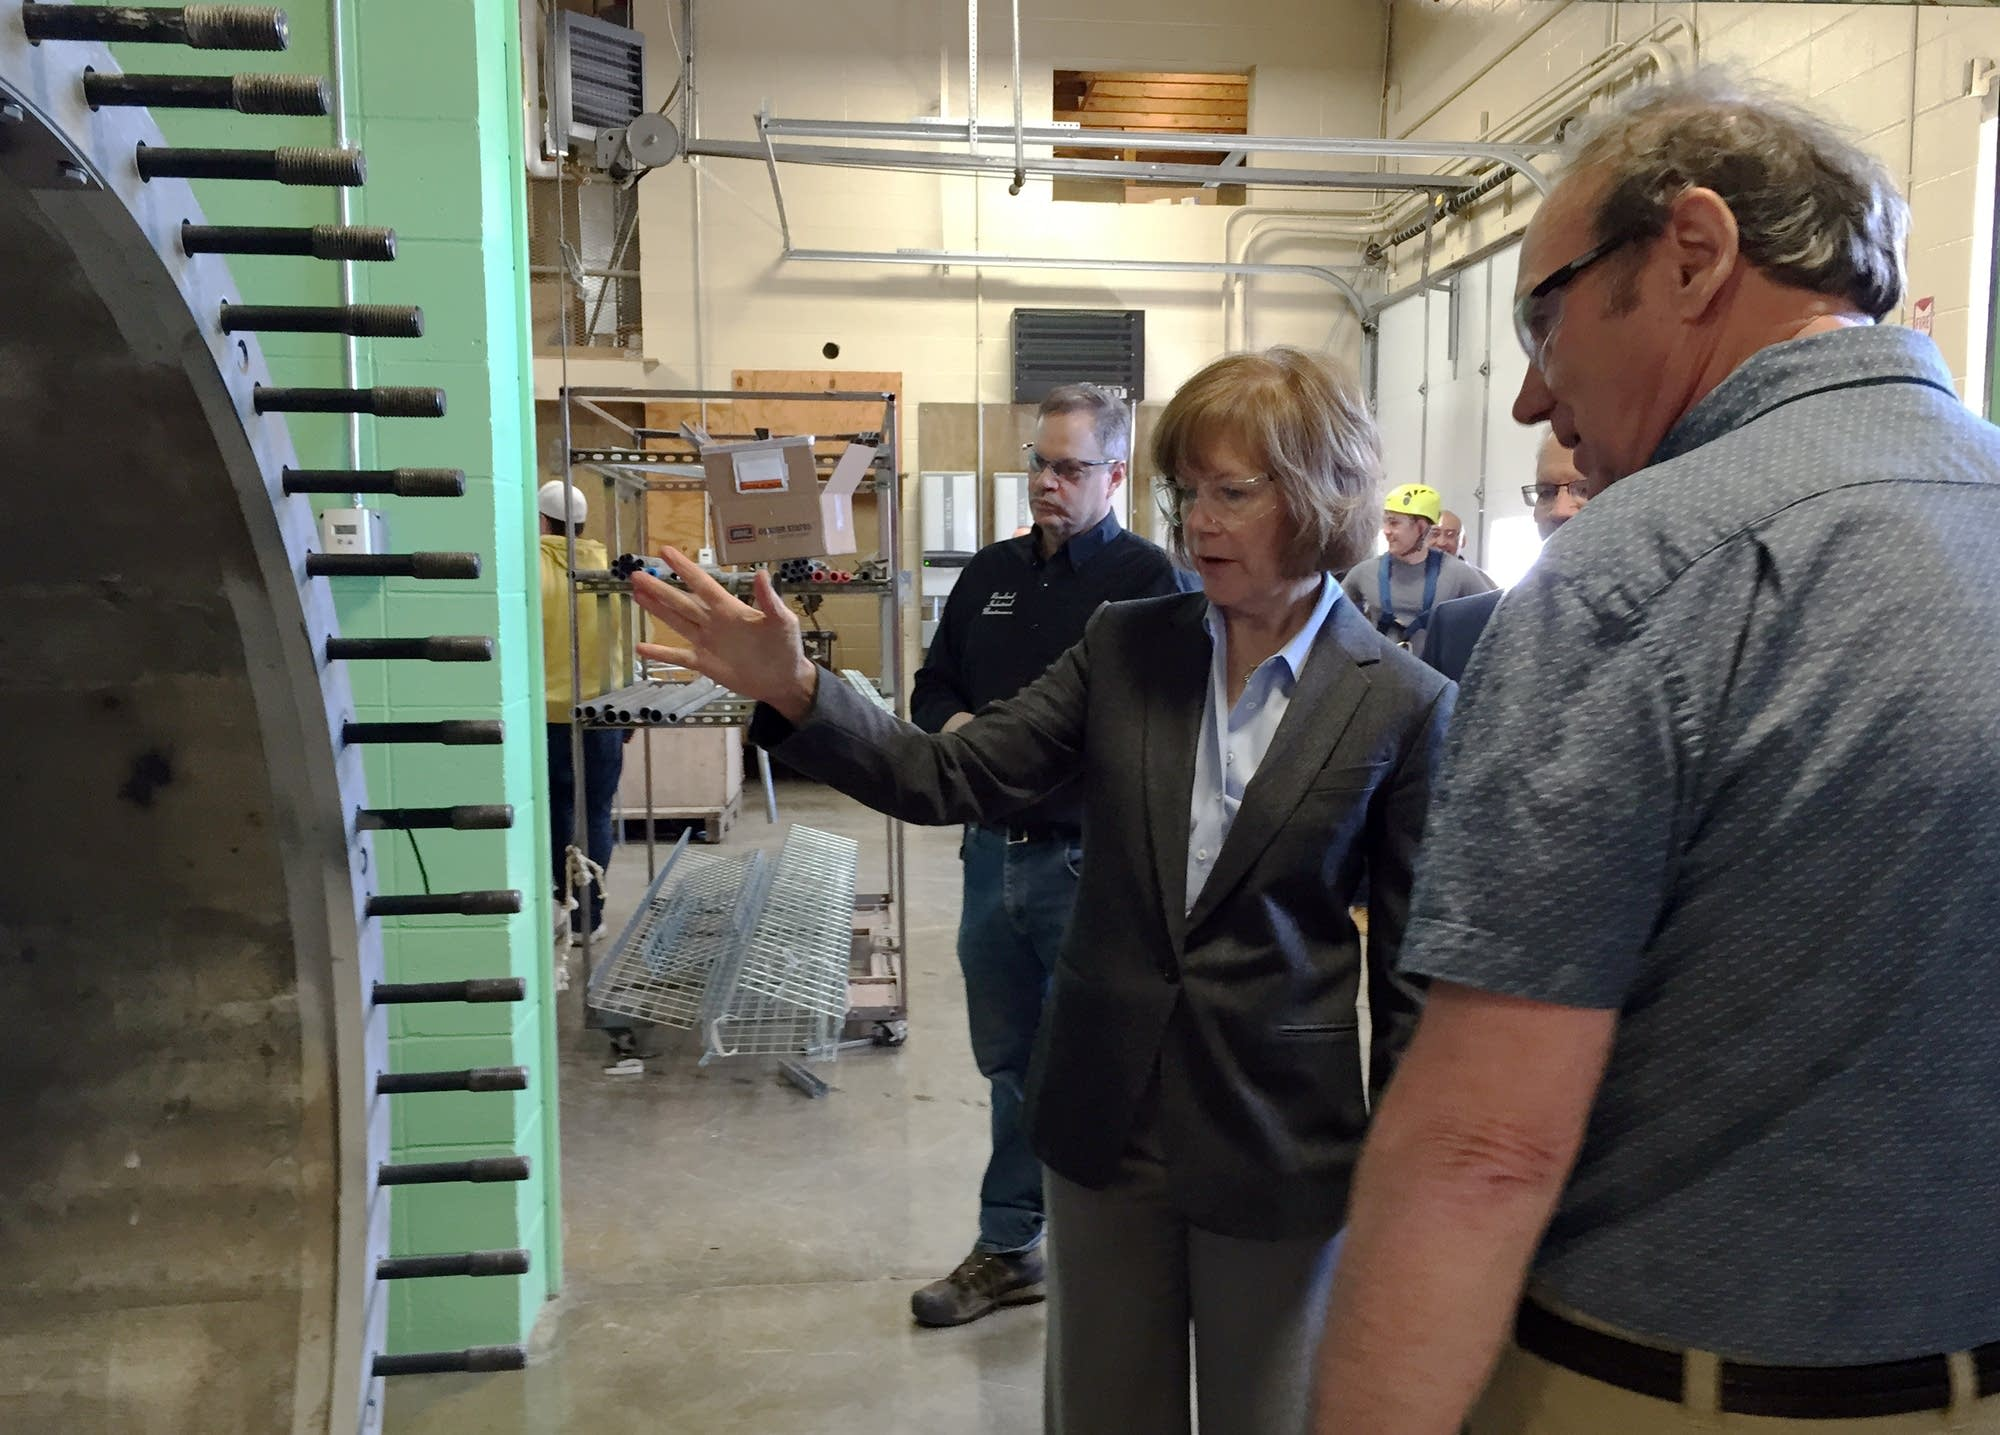 Then-Lt. Gov. Tina Smith looks at a wind turbine base with Steve Vietor.